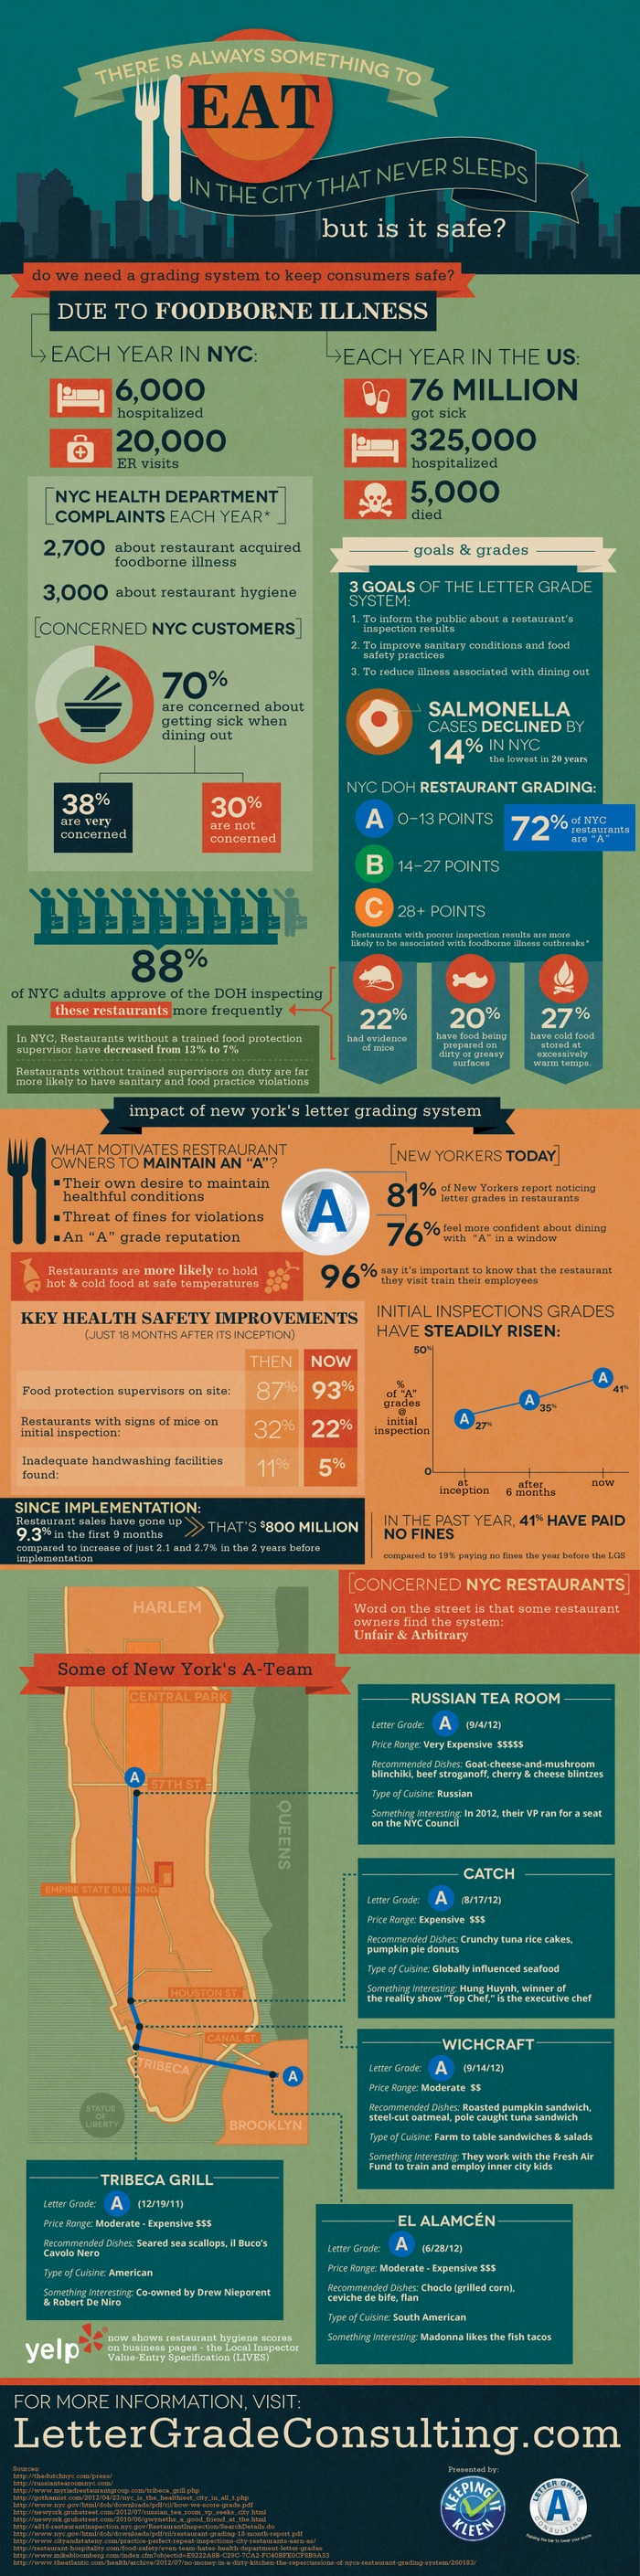 Eating Safely in the NYC